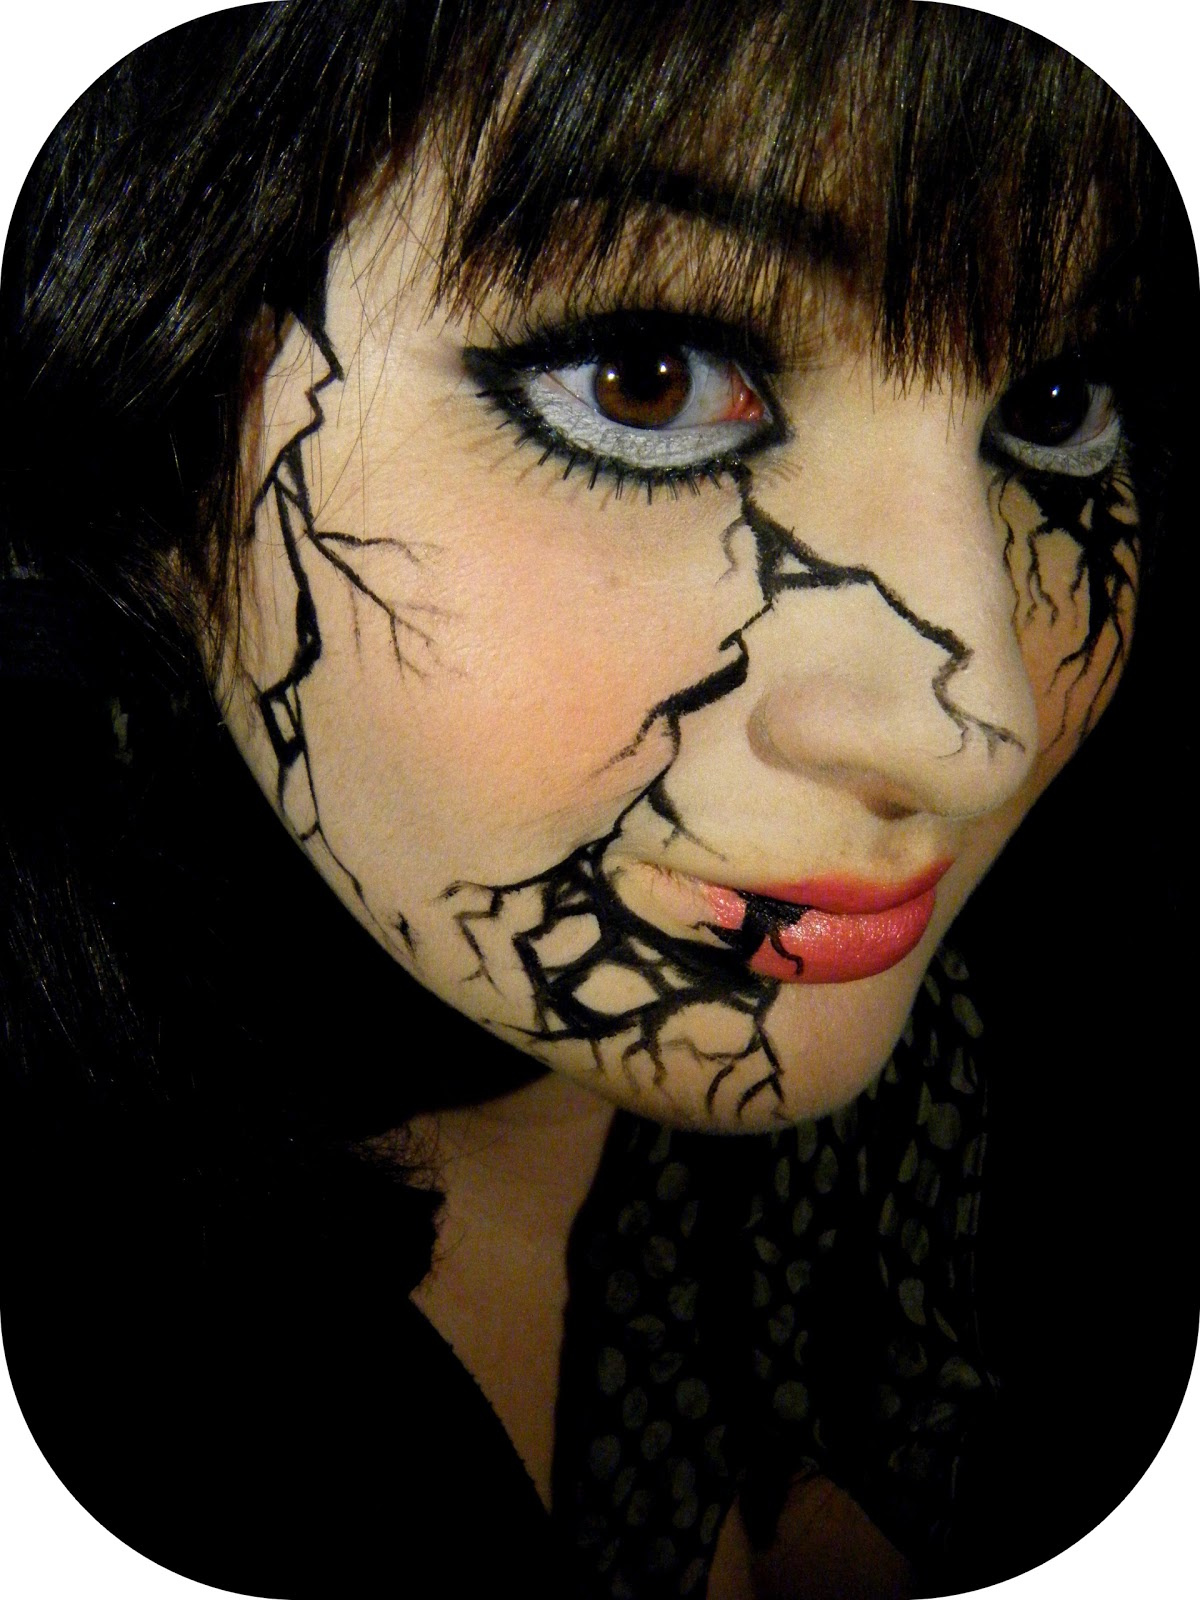 Mon petit coin beaut maquillage halloween 2 broken doll - Maquillage poupe demoniaque ...